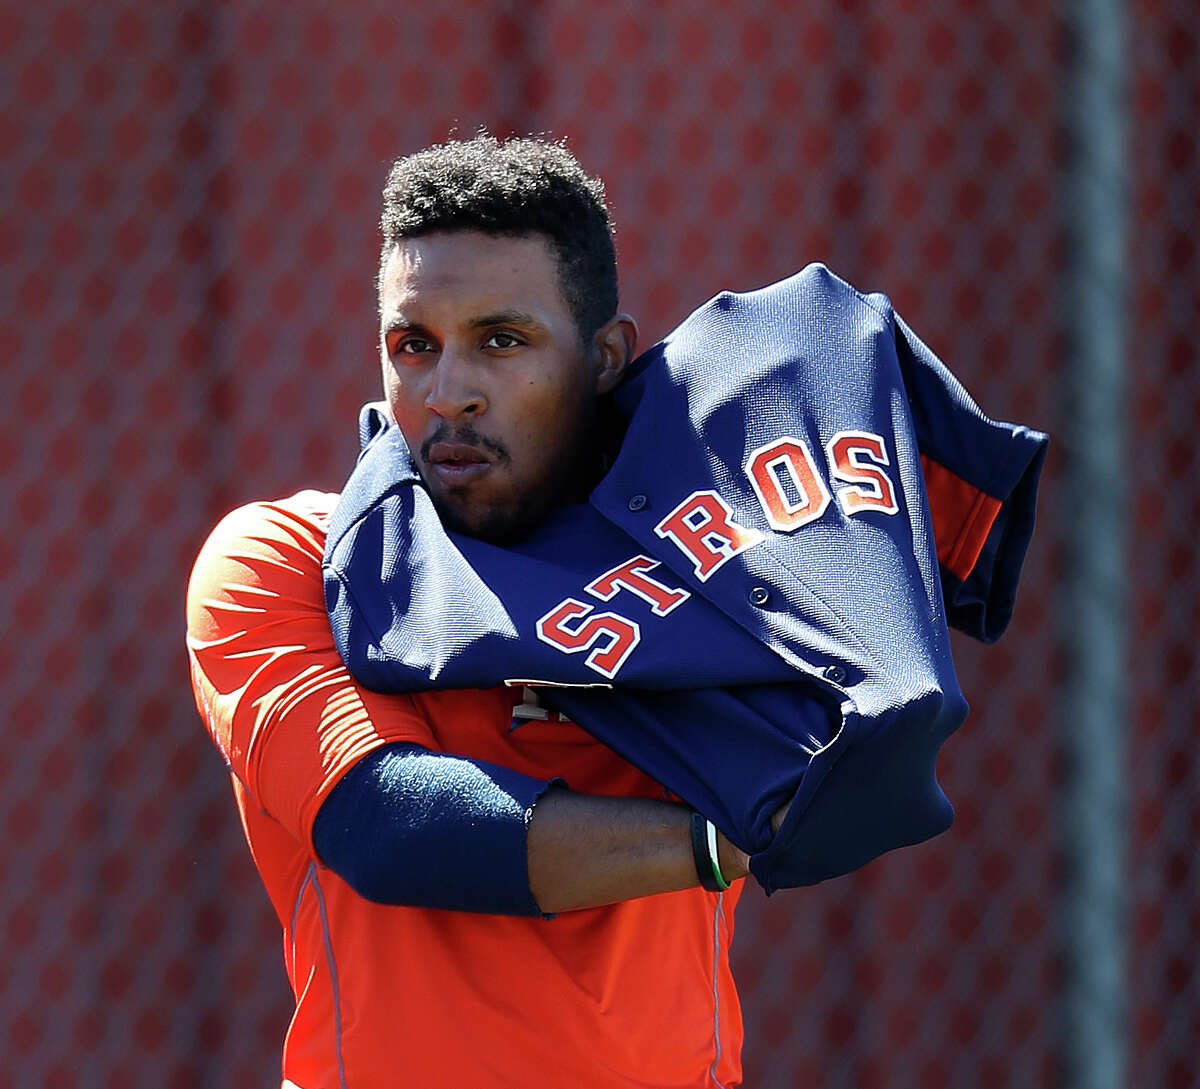 Houston Astros infielder Tony Kemp puts on his jersey at the Astros spring training in Kissimmee, Florida, Friday, Feb. 26, 2016.( Karen Warren / Houston Chronicle )